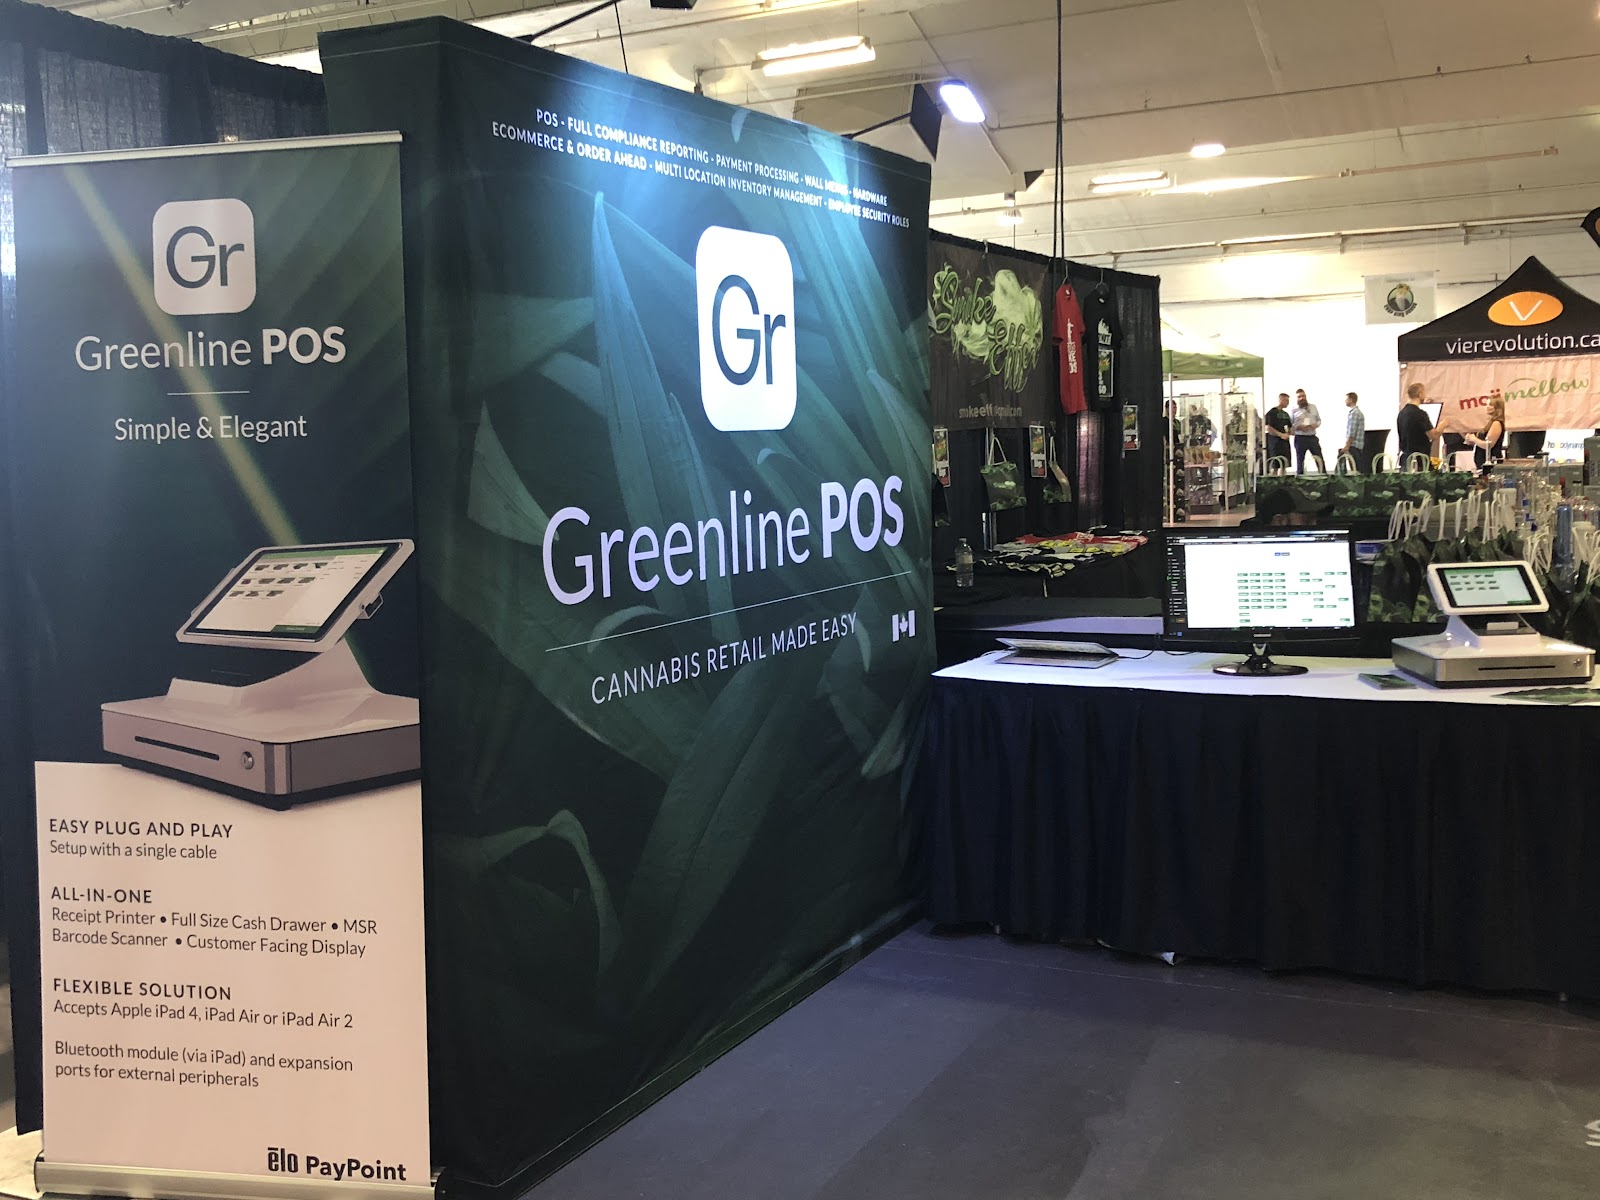 Greenline Cannabis POS on display at an expo.